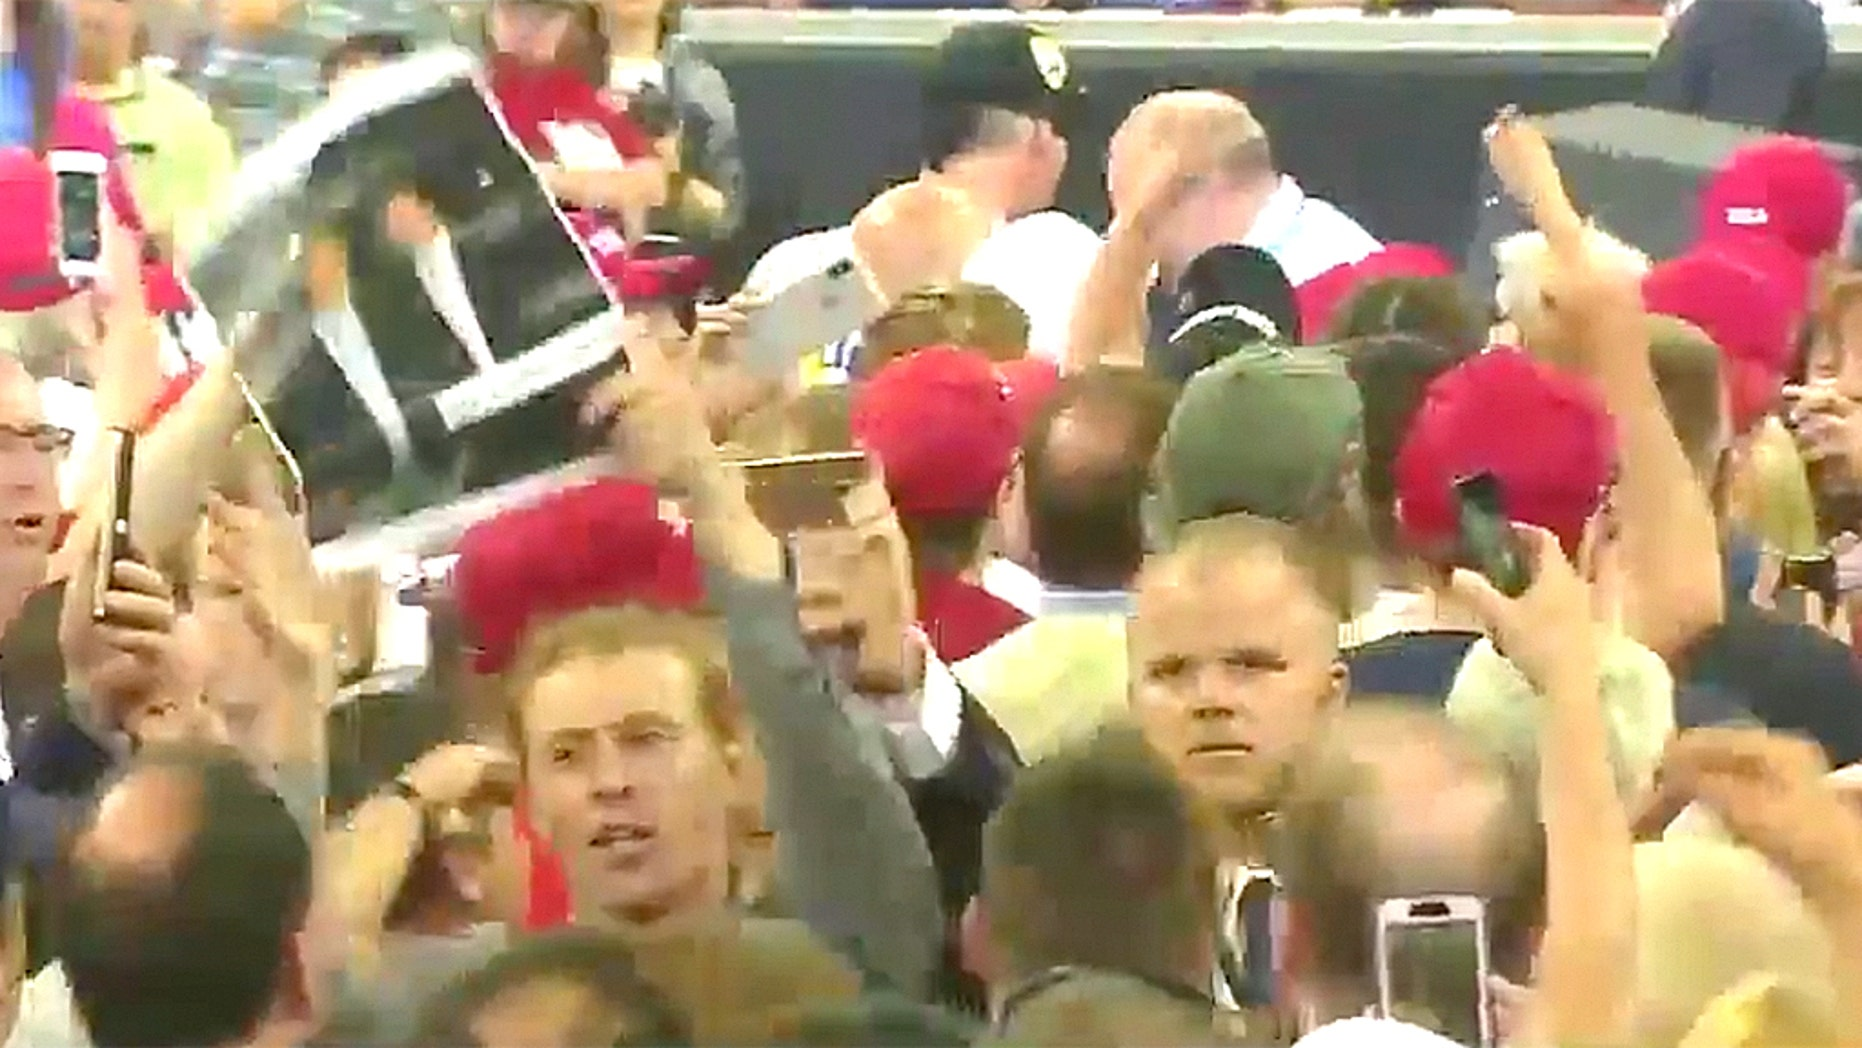 Sam Spadino was booted from Duluth's Amsoil Arena for allegedly yelling at Trump and calling him a rapist before security removed him.